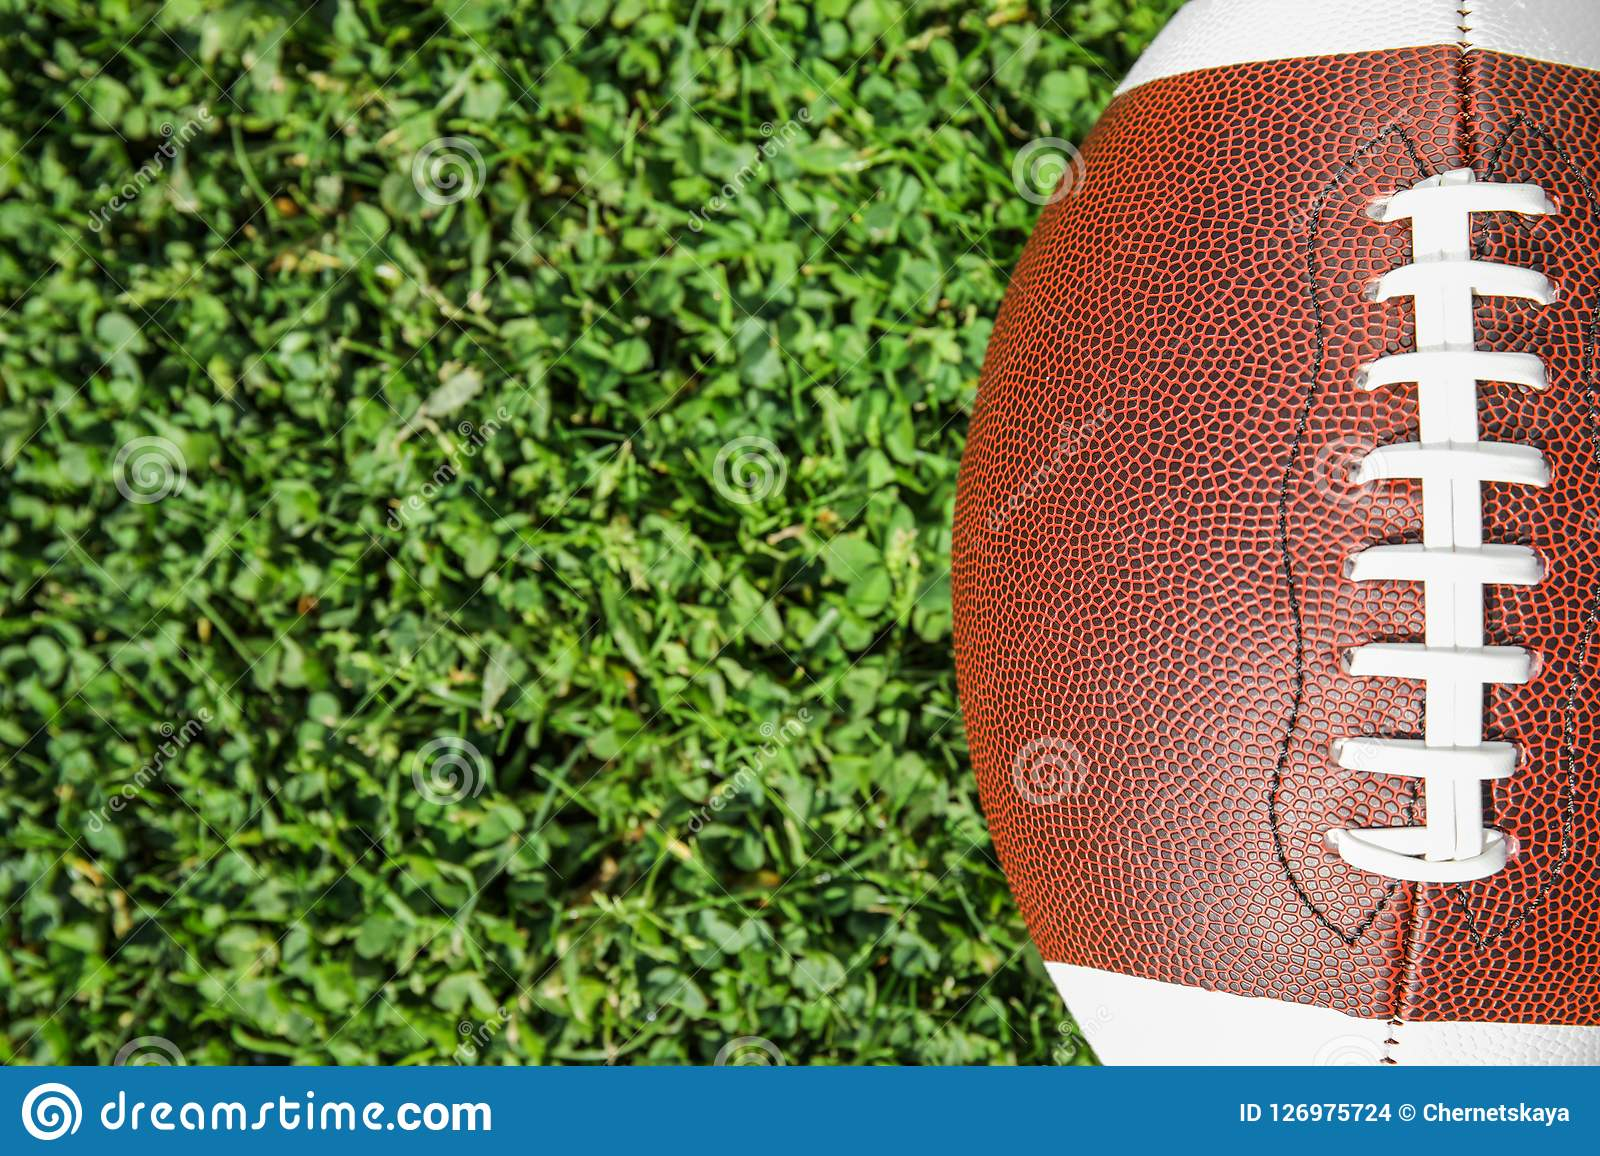 Ball for American football on fresh green field grass, top view